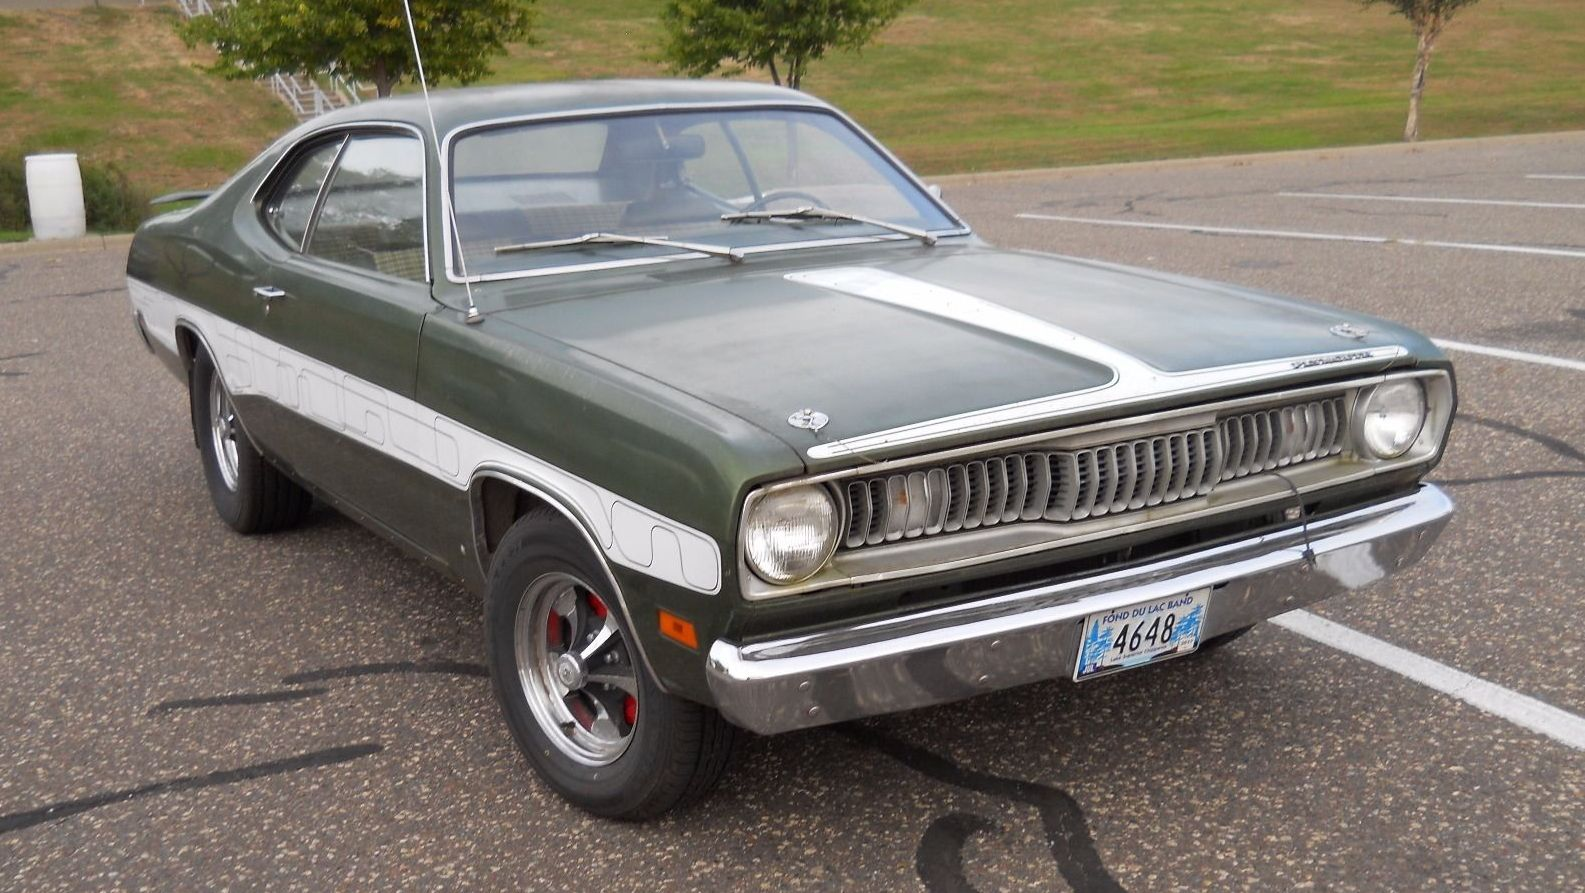 Period Mods: 1971 Plymouth Duster 340